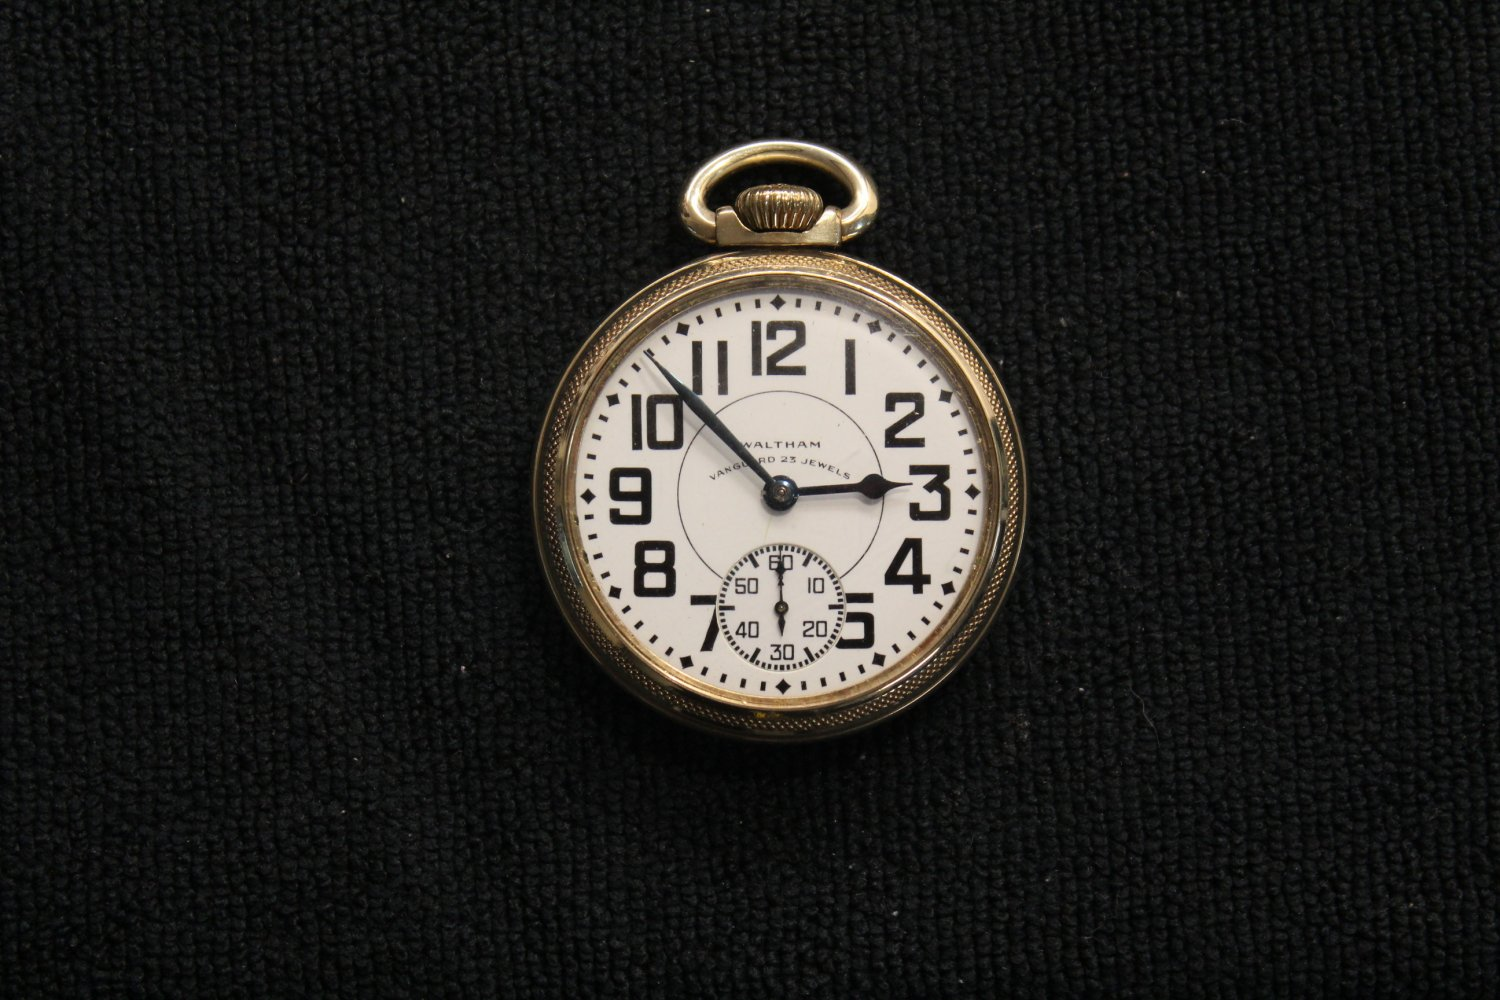 waltham dating serial number Serial number records are available for many of the old pocket watch companies like am waltham serial number system and the date of manufacture is.